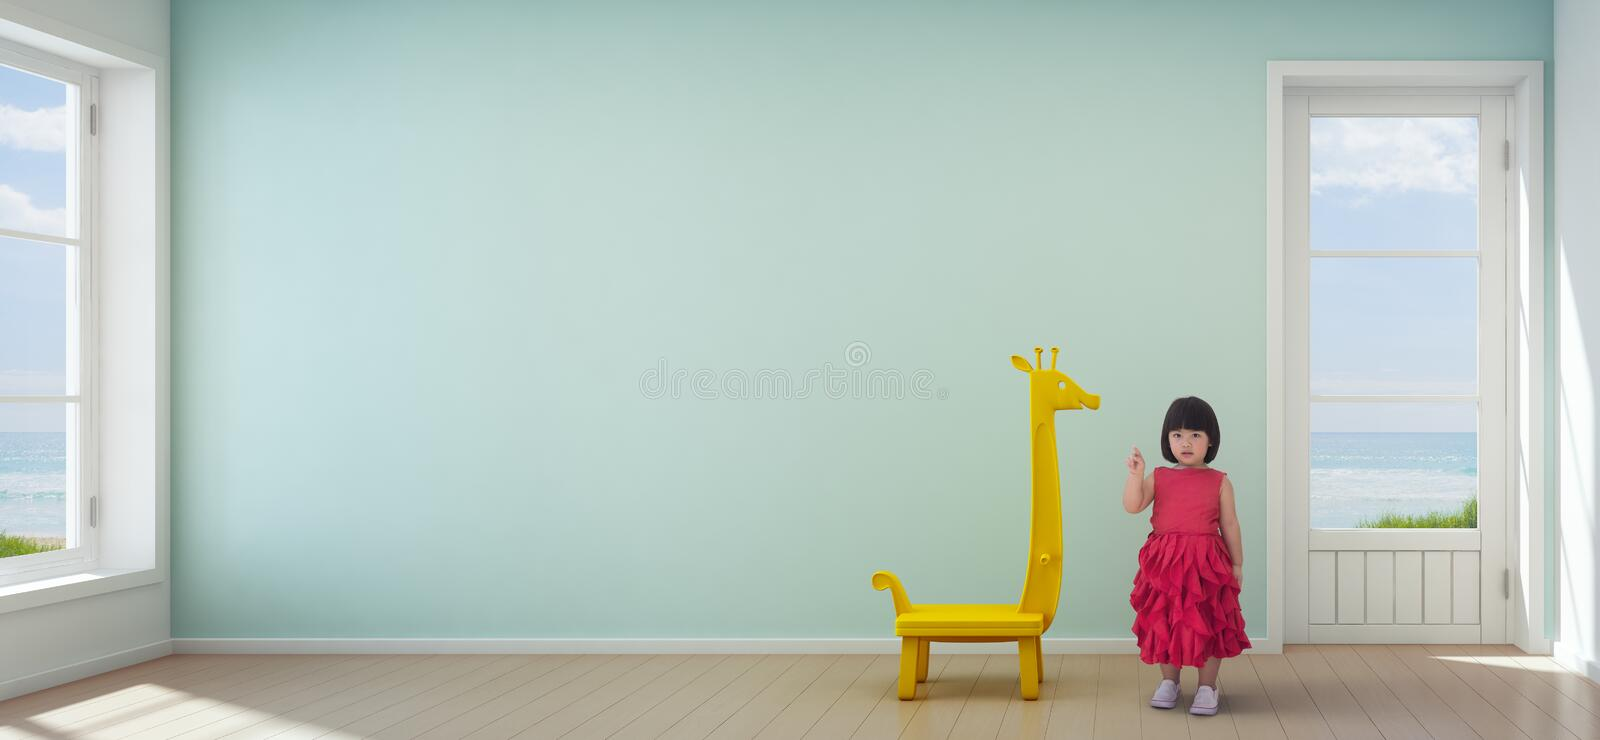 Exterior: Asian Child Girl In Kids Room Of Modern Beach House With